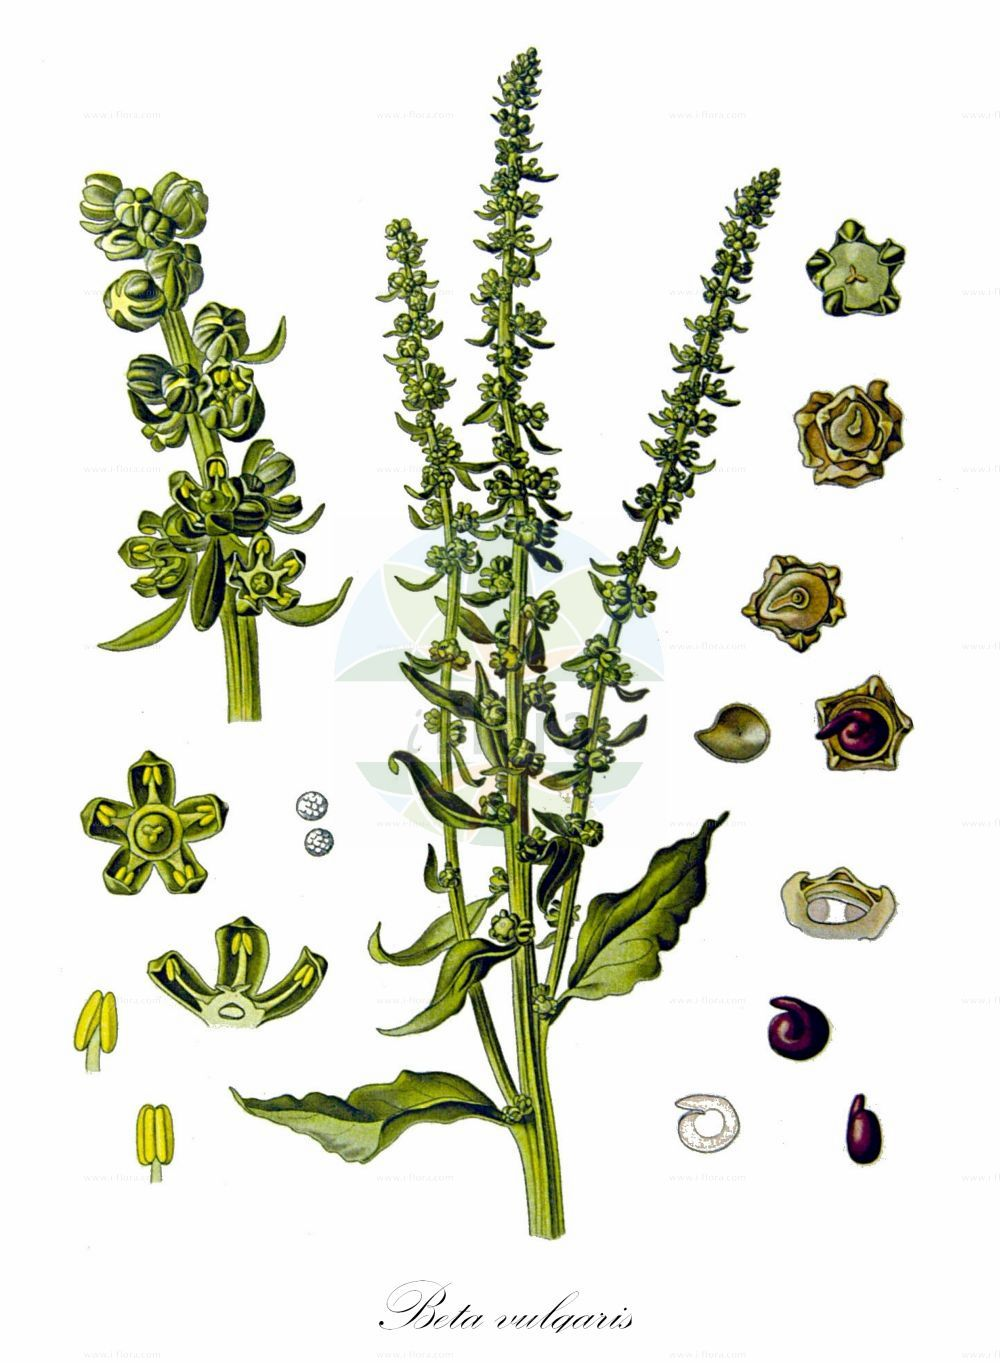 Historische Abbildung von Beta vulgaris (Futter-Ruebe - Beet). Das Bild zeigt Blatt, Bluete, Frucht und Same. ---- Historical Drawing of Beta vulgaris (Futter-Ruebe - Beet).The image is showing leaf, flower, fruit and seed.(Beta vulgaris,Futter-Ruebe,Beet,Beta cicla,Beta crispa,Beta esculenta,Beta sulcata,subsp. esculenta,Beta-Ruebe,Gewoehnliche Ruebe,Mangold,Runkelruebe,Common  & Sea ,Beta,Ruebe,Beet,Amaranthaceae,Fuchsschwanzgewaechse,Pigweed family,Blatt,Bluete,Frucht,Same,leaf,flower,fruit,seed,Koehler (1883-1898))